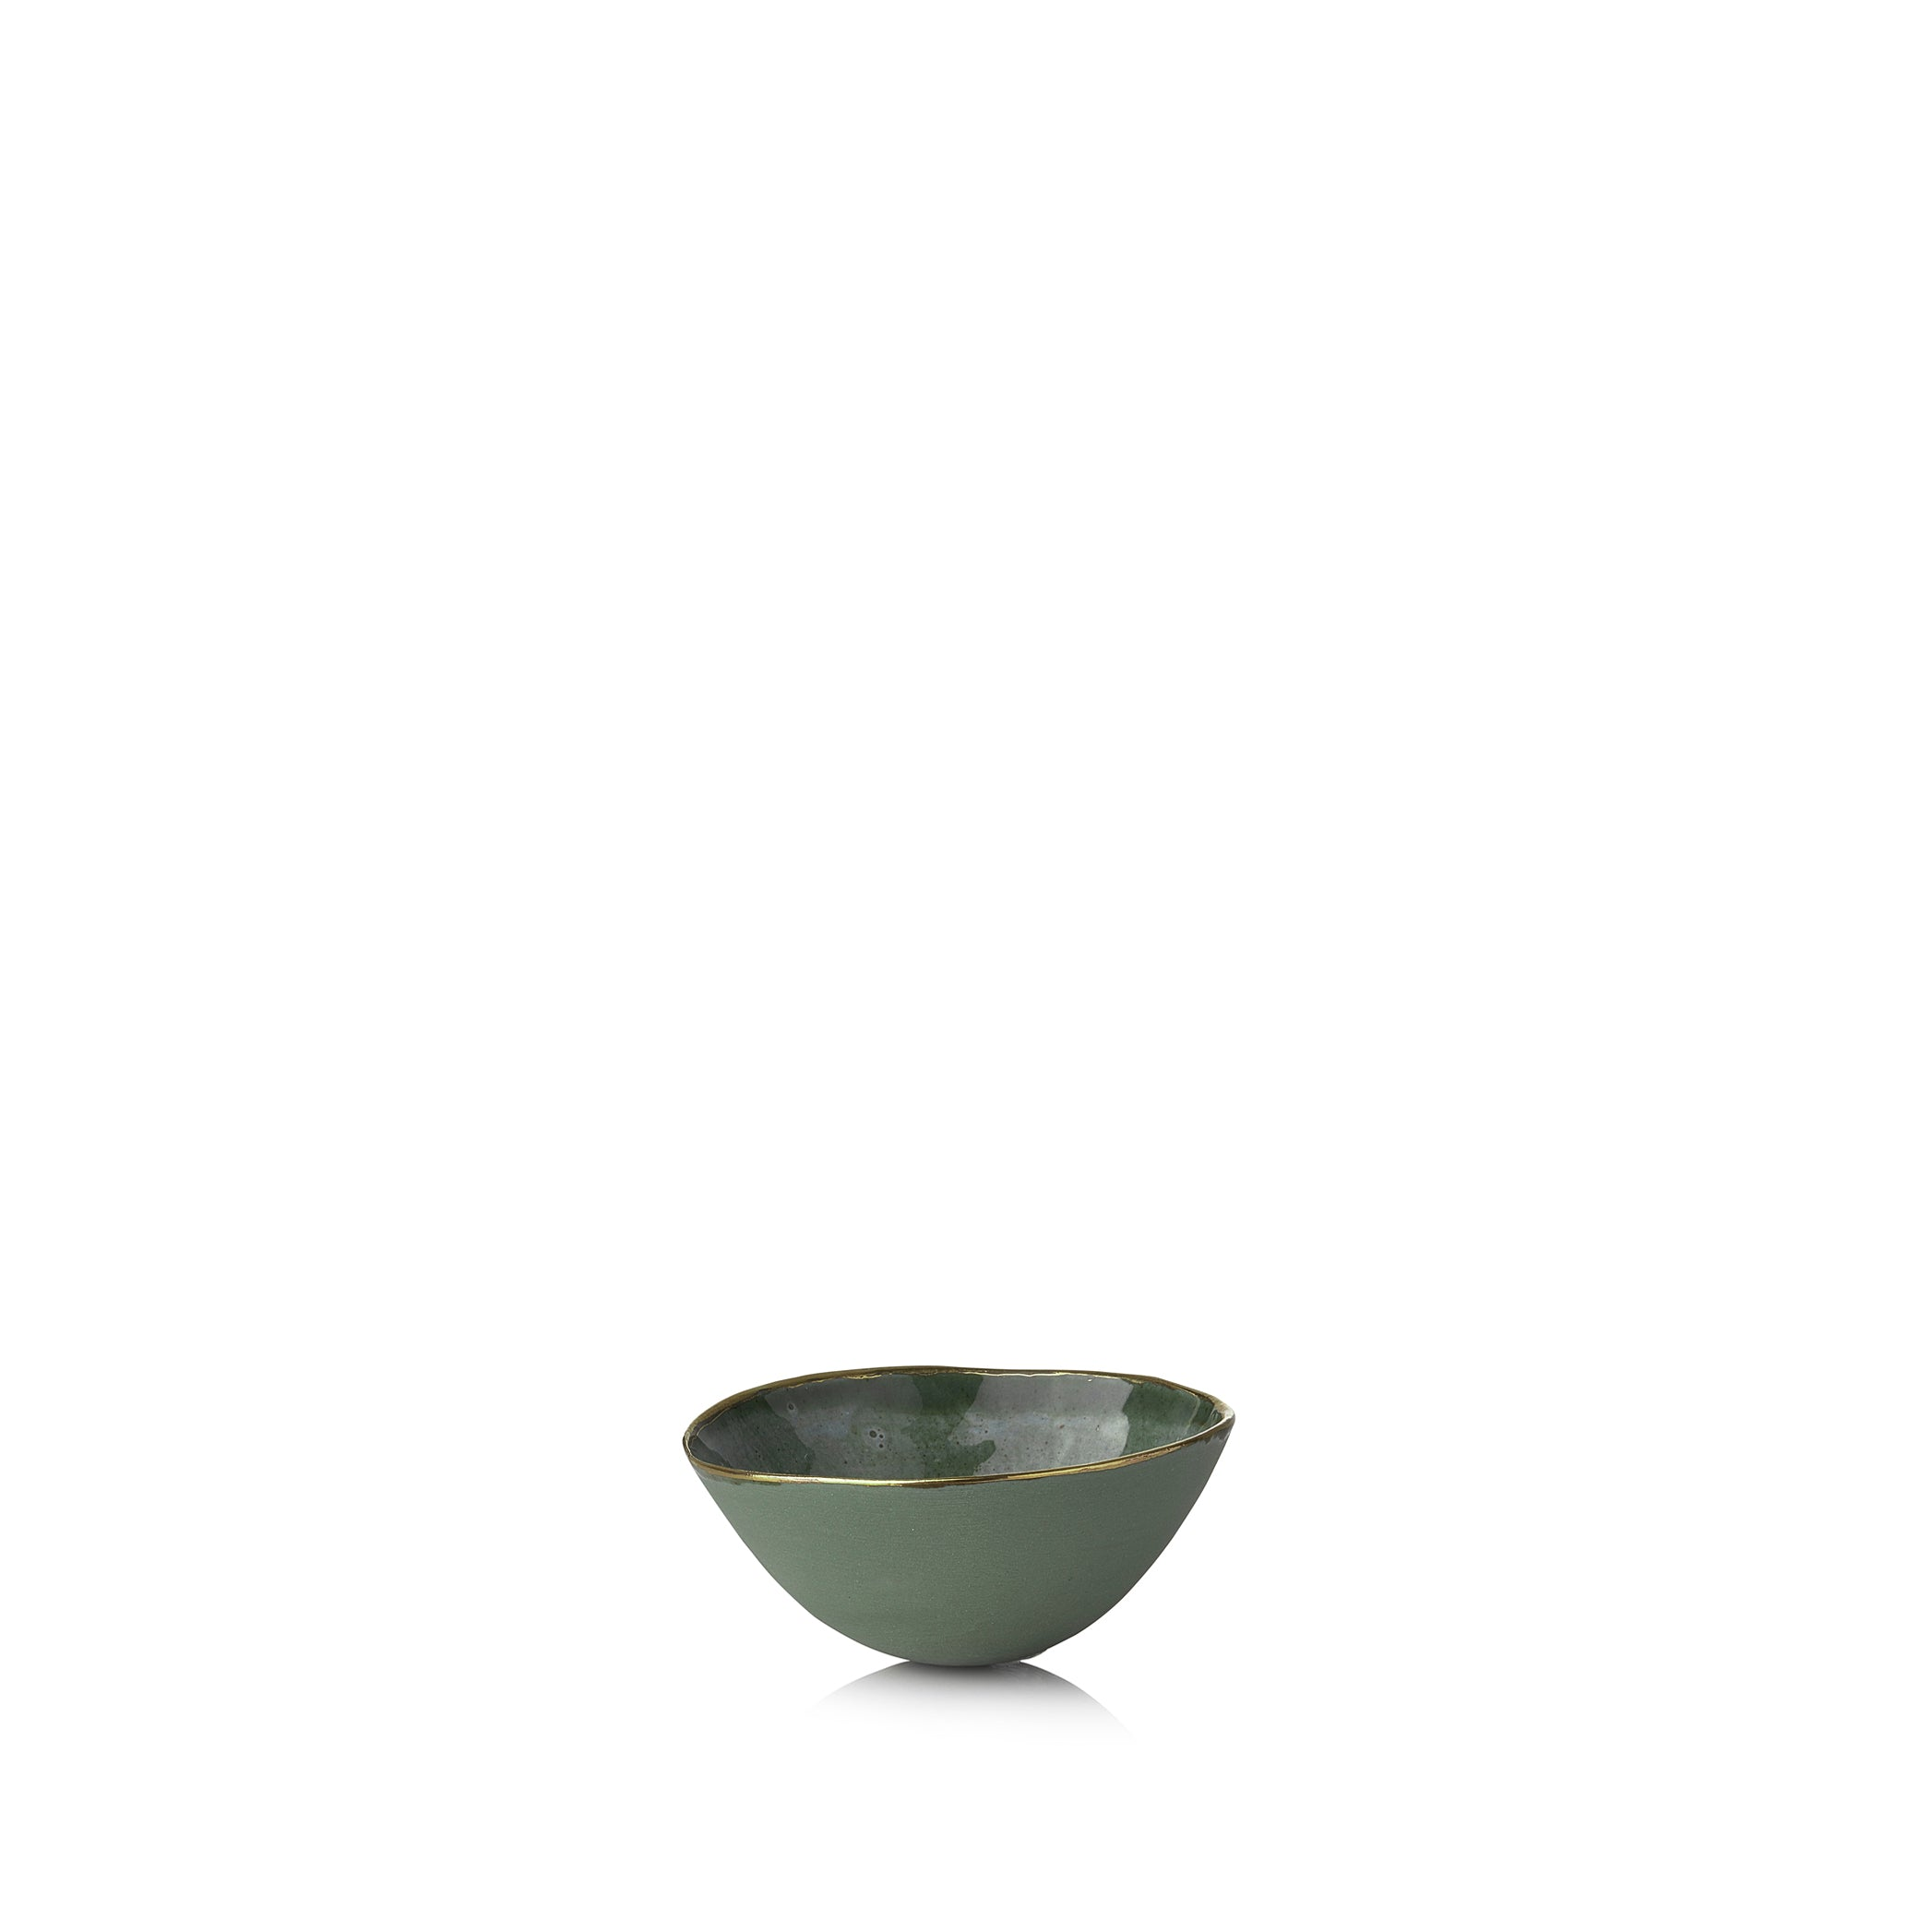 Full Painted Olive Green Ceramic Bowl with Gold Rim, 6cm